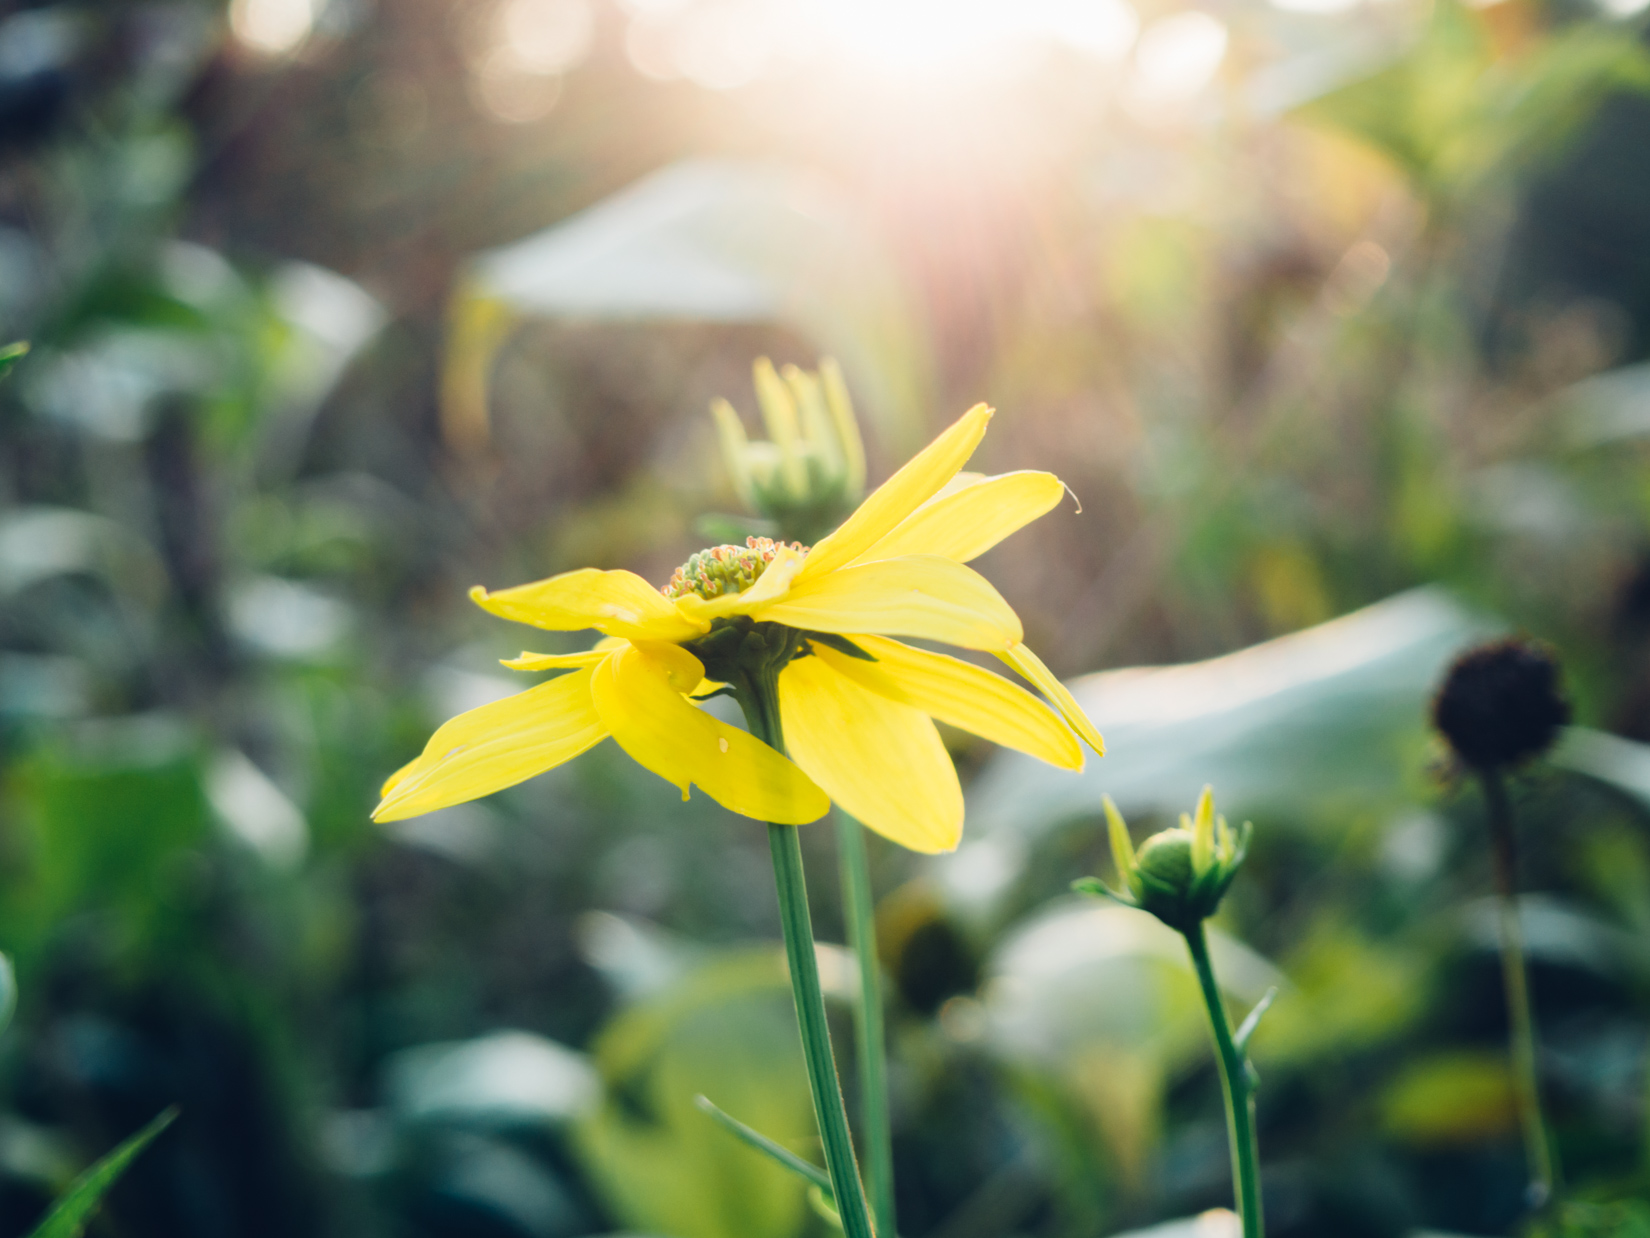 Yellow Flower and Sunlight